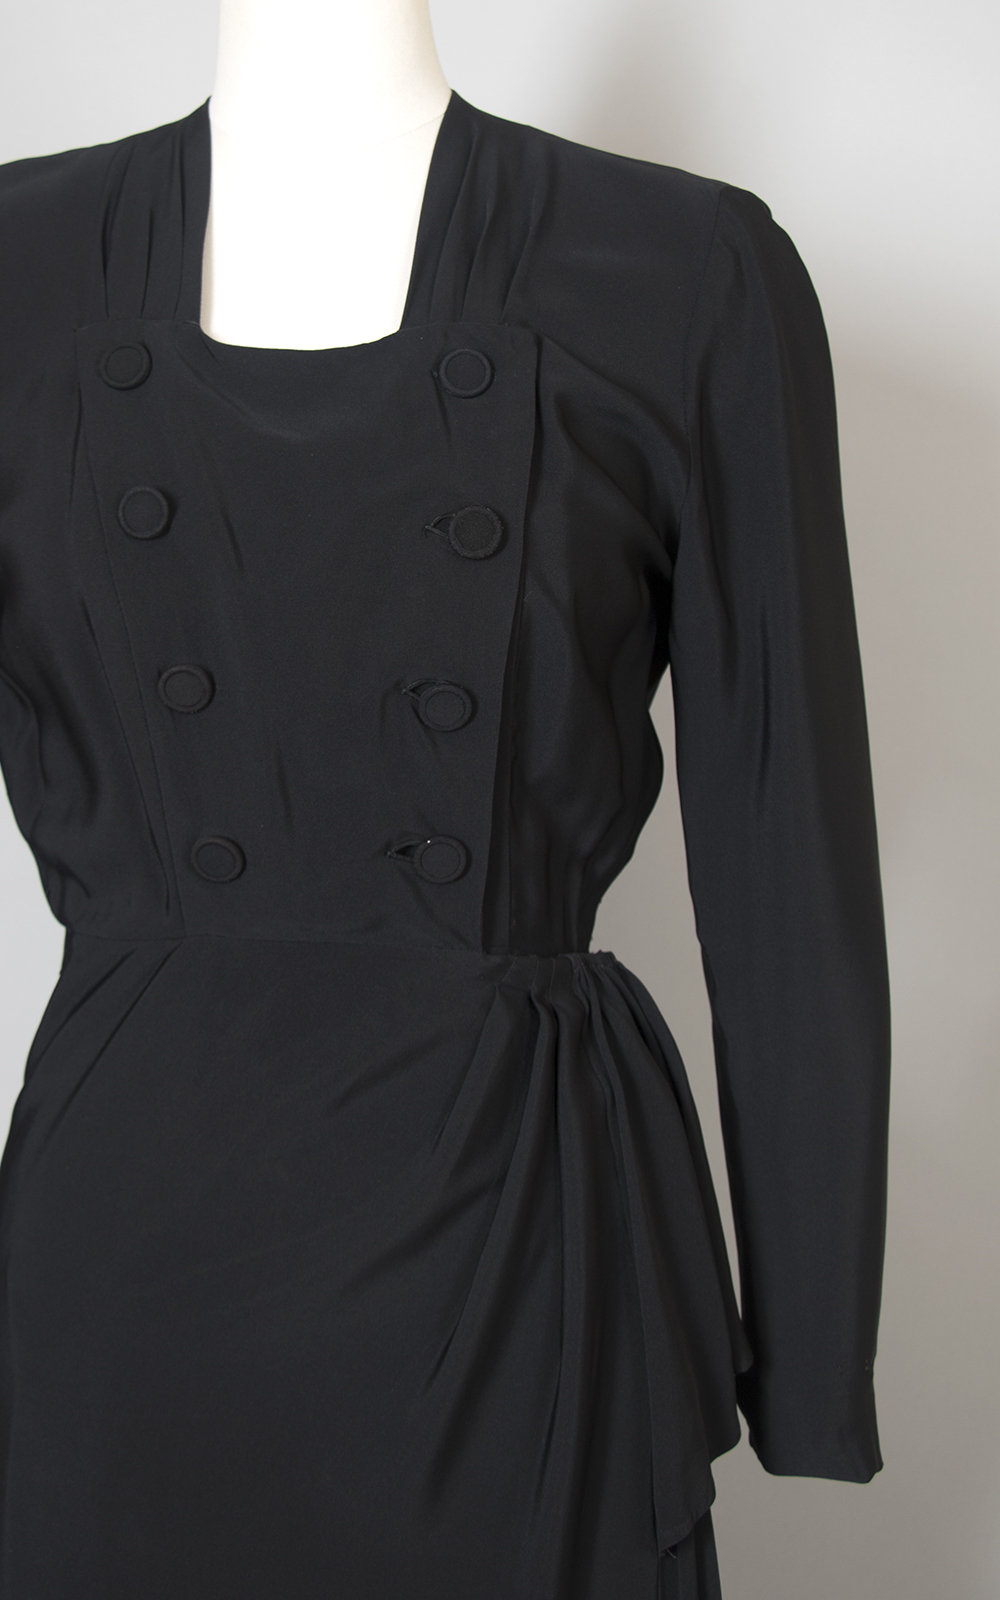 Vintage 1940s Dress | 40s Black Rayon Cocktail Dress Double Breasted Draped Long Sleeve Evening Dress (small)